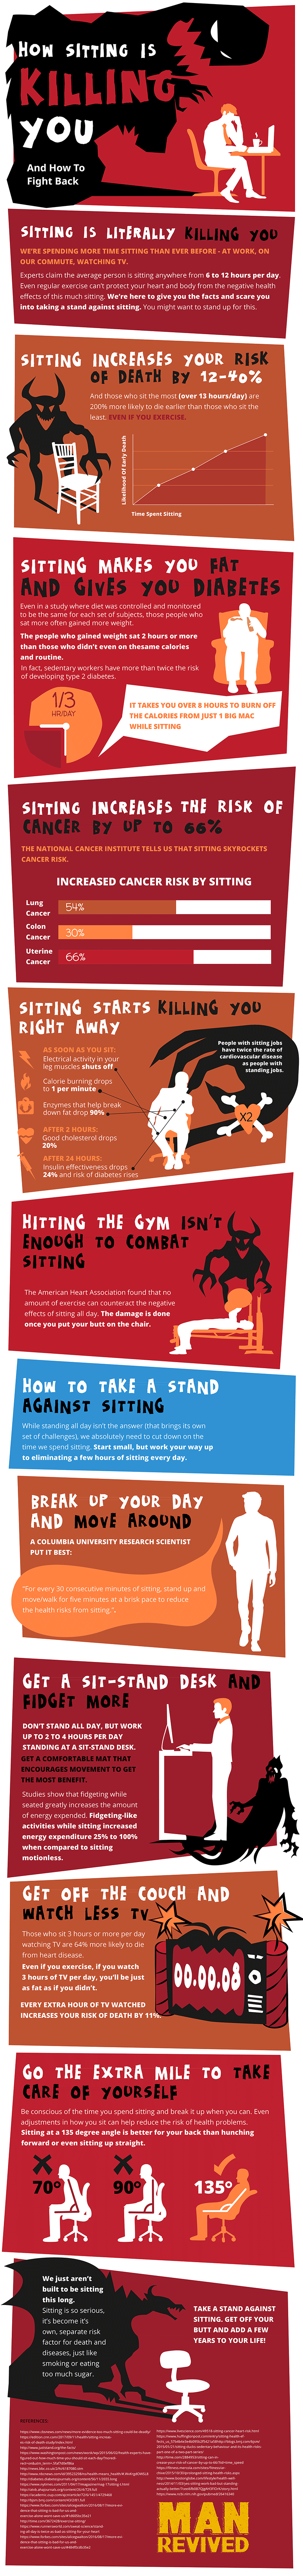 health risks of sitting at work